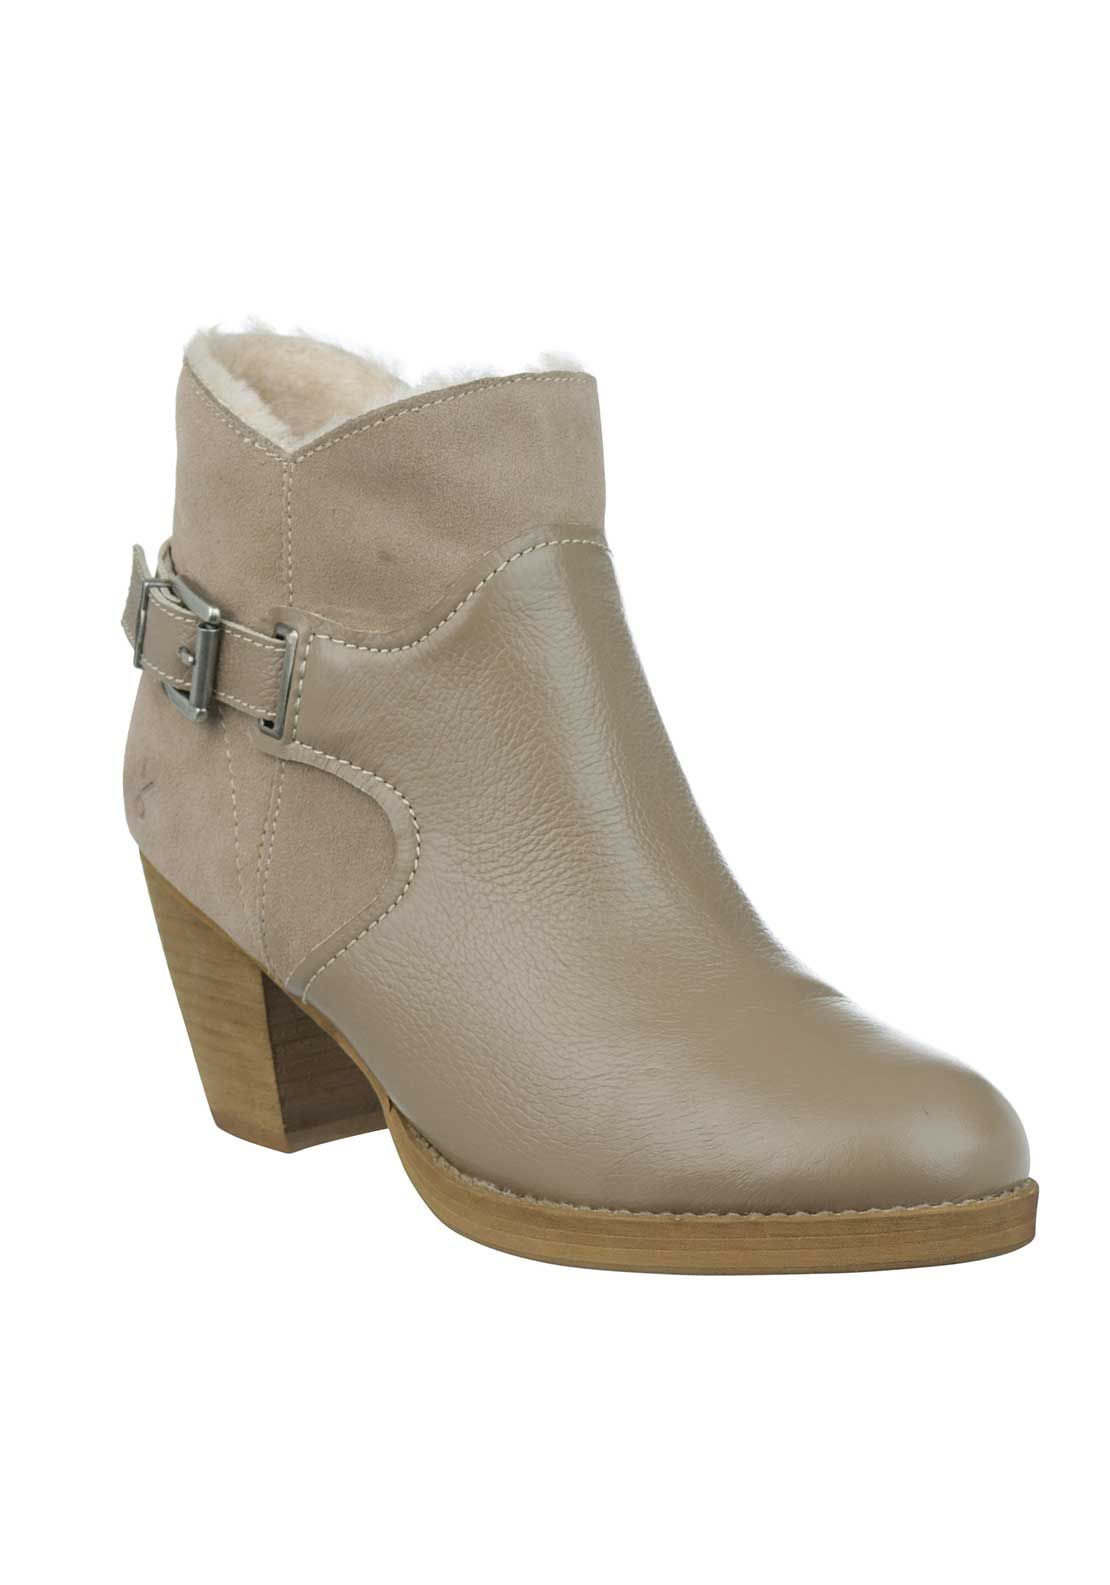 EMU Australia Sturt Leather Ankle Boots, Taupe